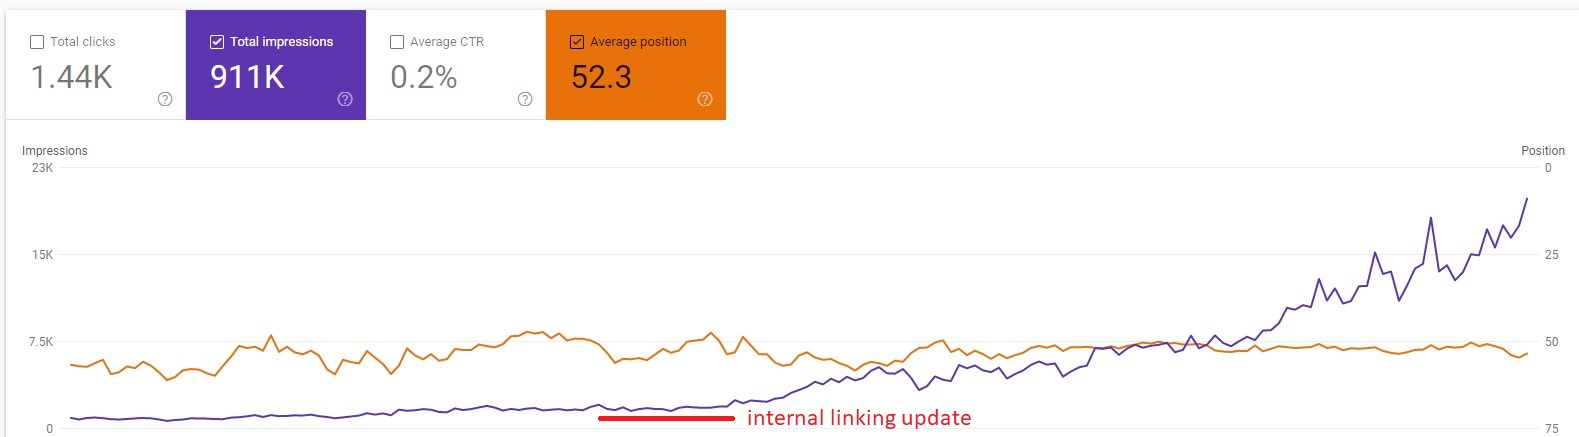 ranking more stable with internal linking